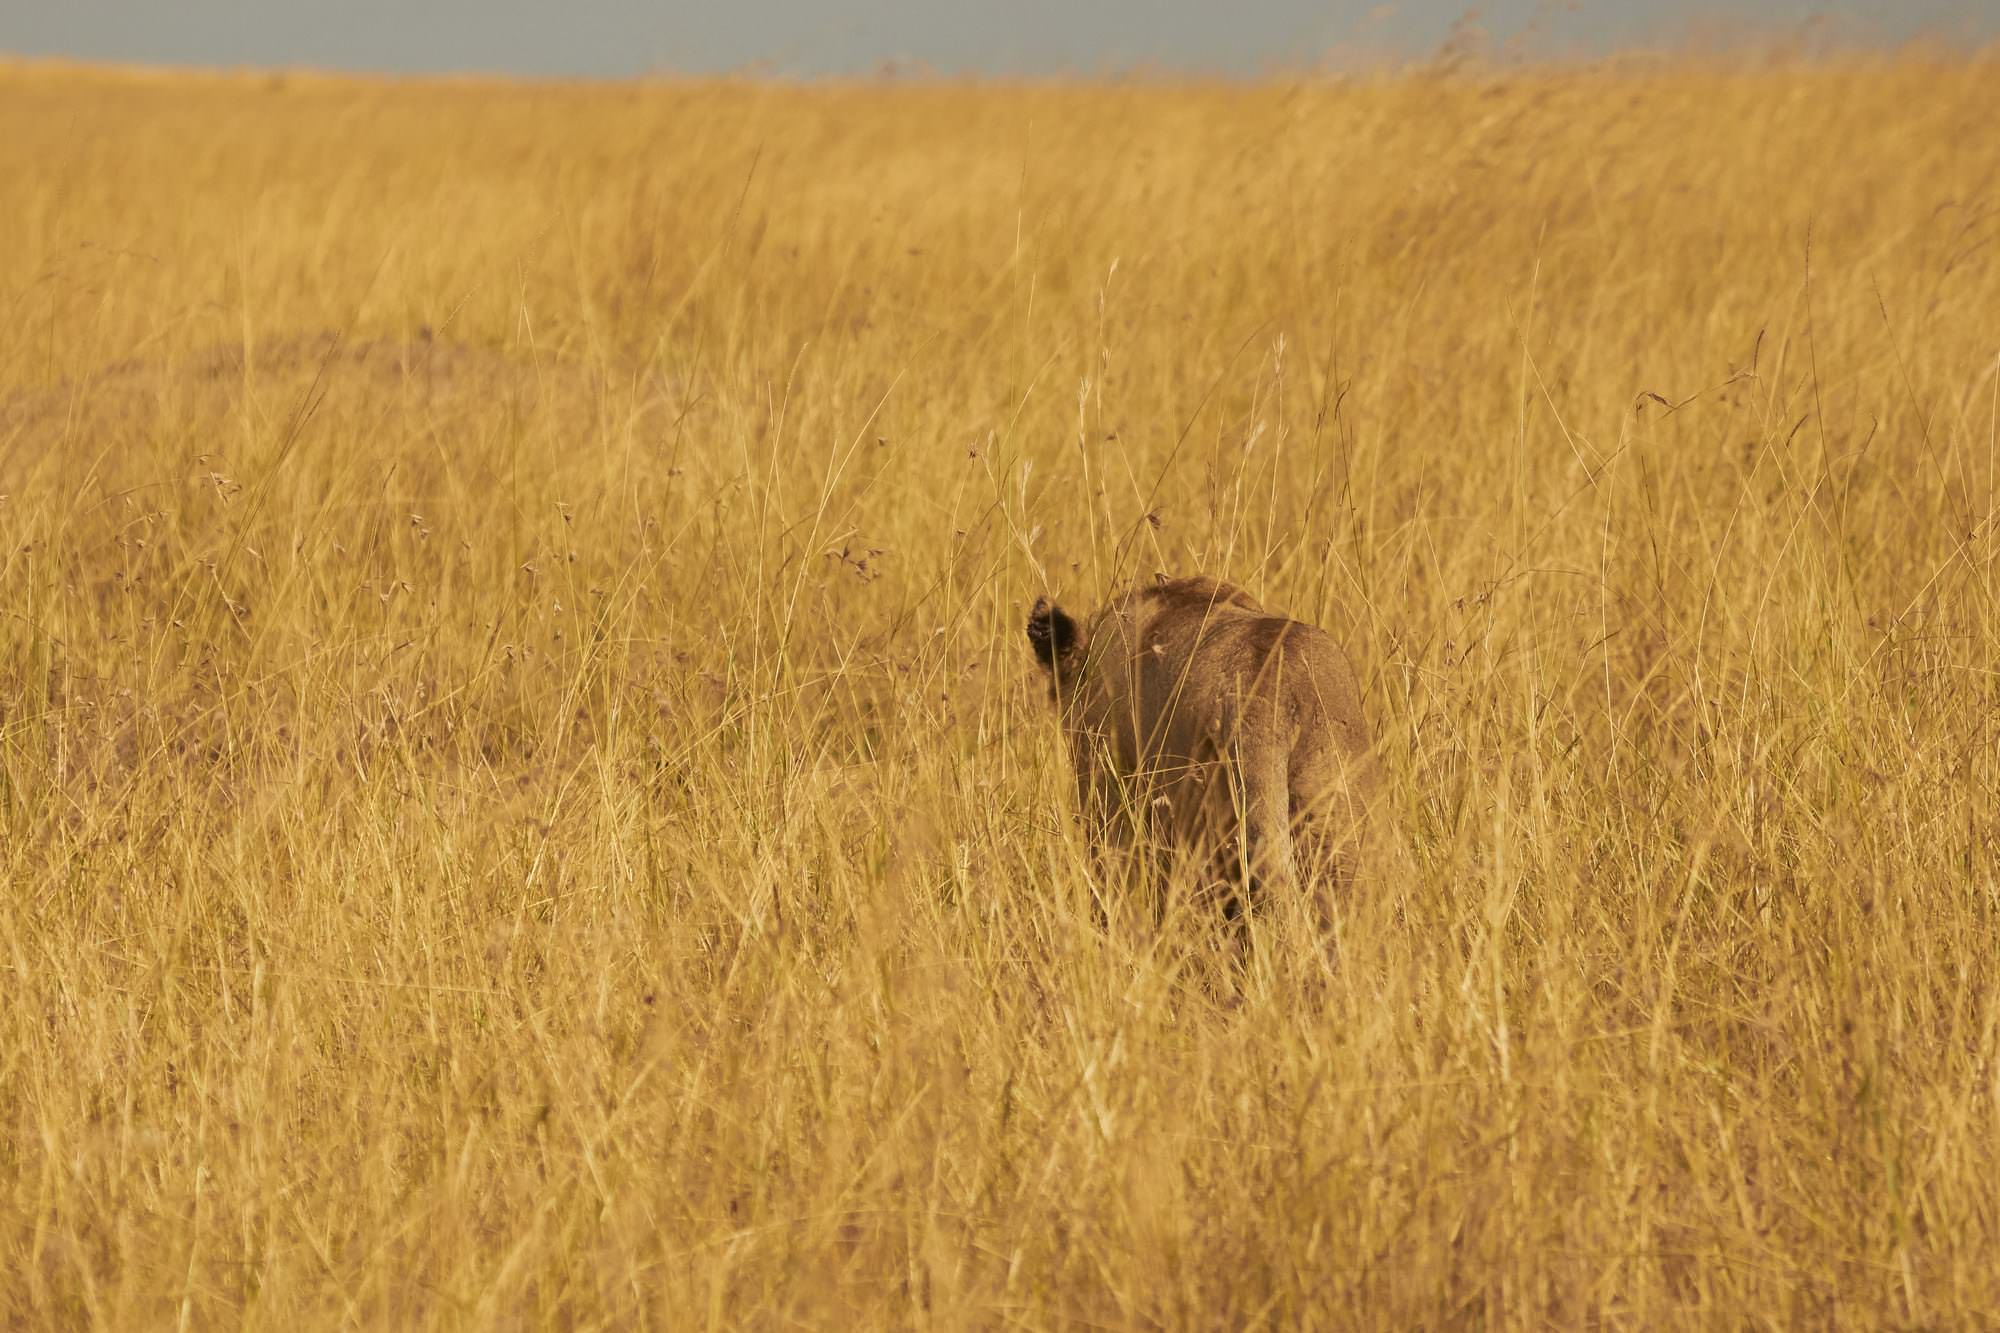 Lioness walking away into the Savannah